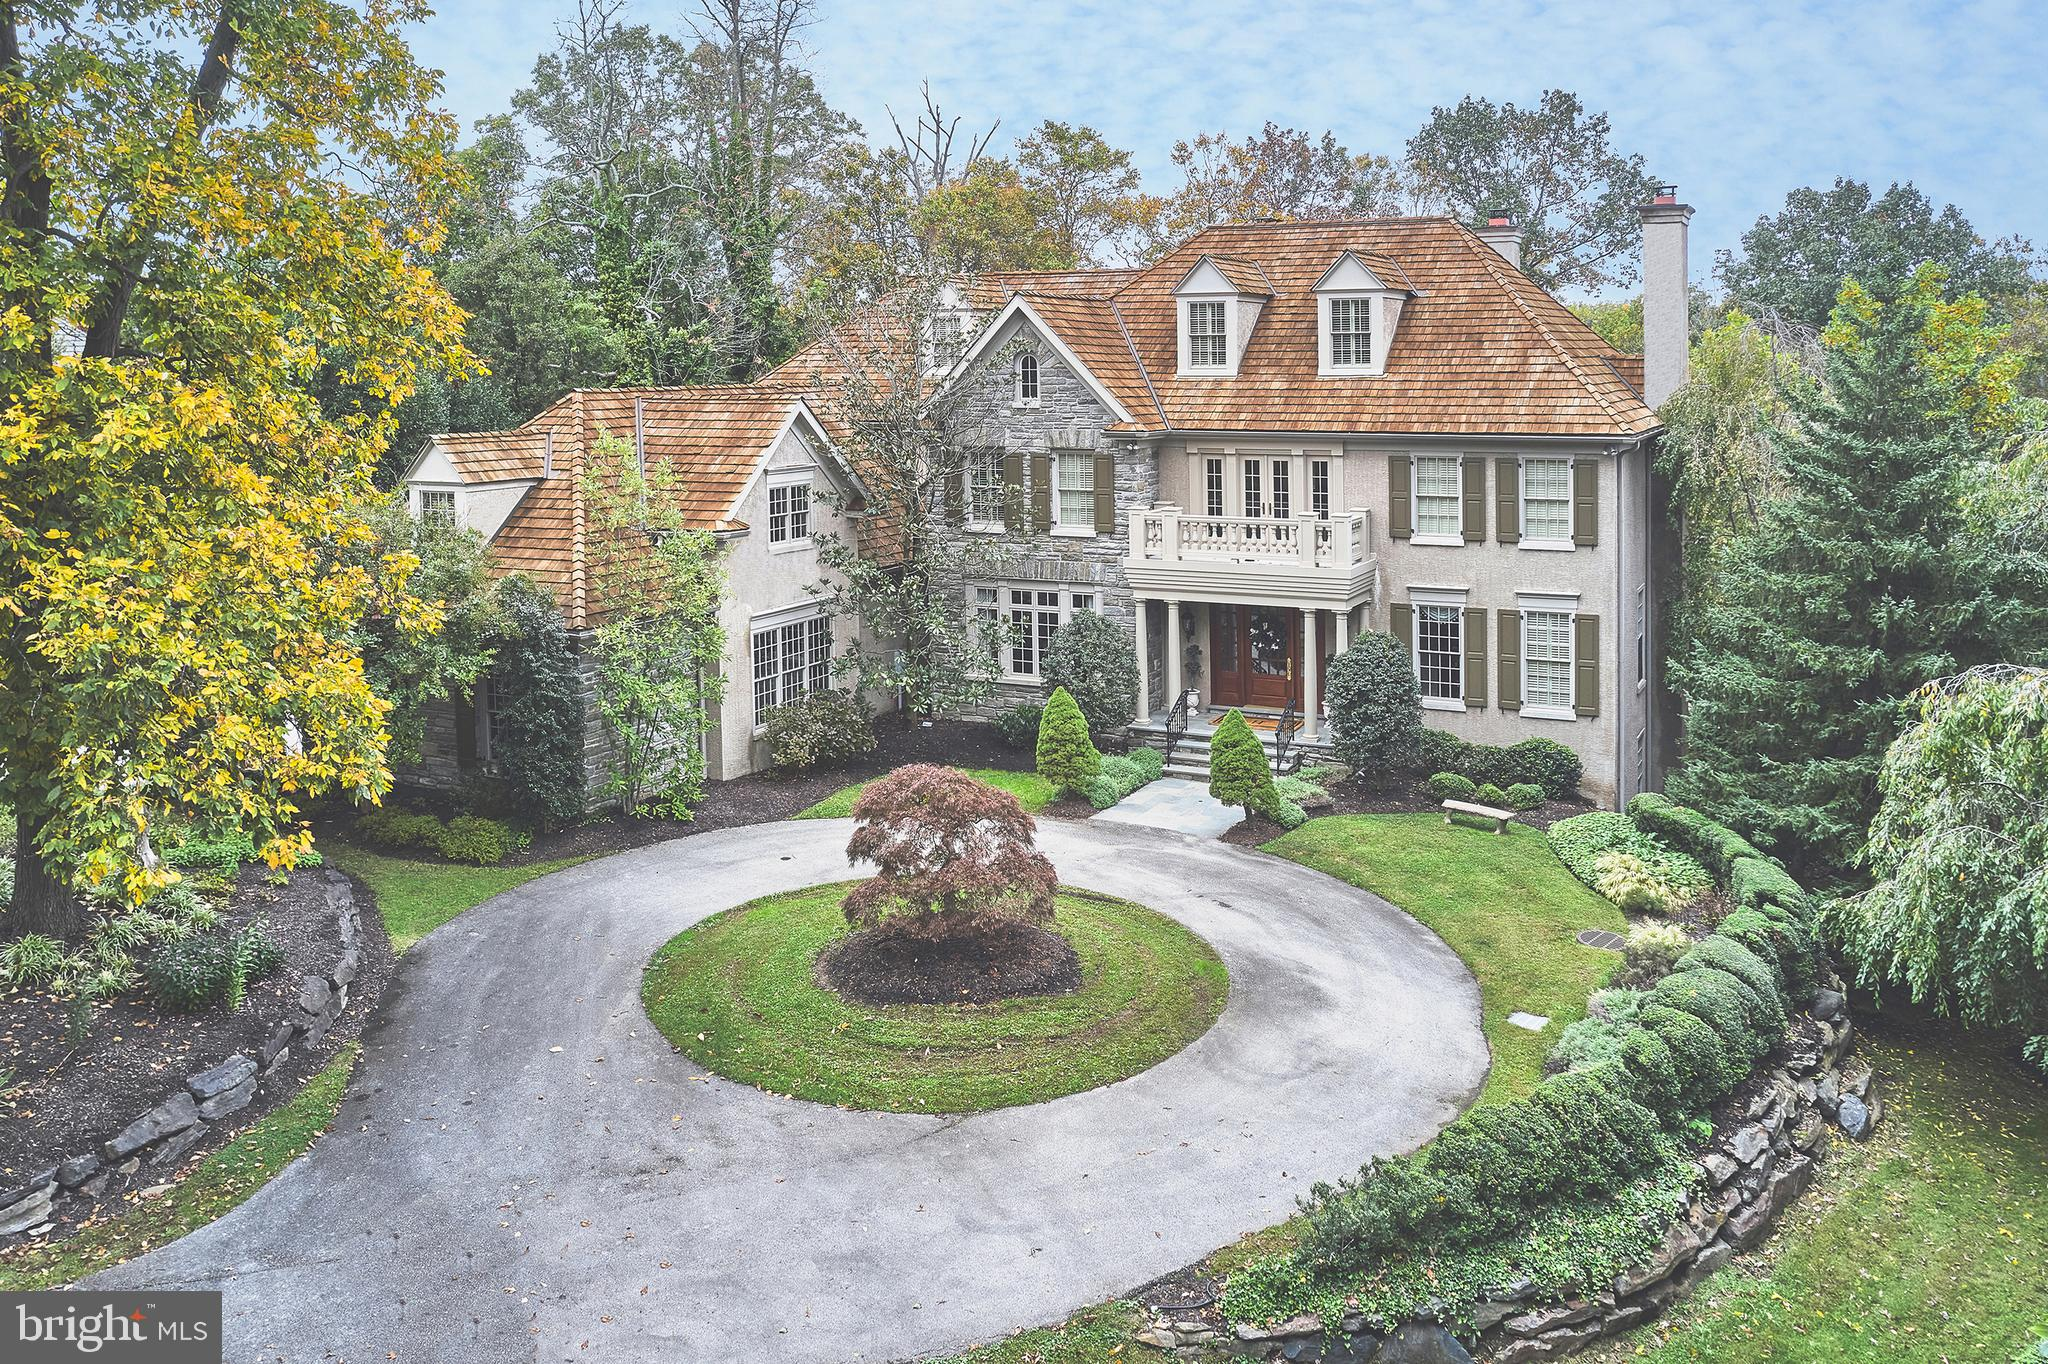 Incredible property in RADNOR TOWNSHIP!  Look no further and move right into this majestically set sun-filled manor home in the prestigious cul-de-sac neighborhood of Montparnasse, featuring superior Cas Halloway construction with every conceivable amenity, breathtaking mature landscaping, serene pool and spa, expansive private terraces, patios and views, two screened porches and more. Live every day like you're on vacation with complete privacy in this quiet cul-de-sac neighborhood, yet close to all major commuting routes, renowned schools, shopping, restaurants and more. Enjoy the gracious open floor plan offering soaring ceilings with freshly painted neutral decor, finely crafted moldings and casements, stunning cherry floors throughout much of the home, timeless finishes, a wonderful flow for every day living and easy entertaining as well as multiple office spaces and recreational rooms for the family and guests. Incredible features include 6 spacious bedroom suites each with their own custom tiled creamy tiled bathroom, frameless glass showers, a luxurious master suite with large sitting room featuring Stark Carpeting and a gas fireplace, walk-in dressing room with custom built-ins and a beautiful marble master bath with gracious decor, Living and Dining rooms with 10' ceilings and floor to ceiling windows, expansive gourmet kitchen with creamy custom cabinetry, classic granite countertops, Viking gas cooktop, two Viking wall ovens, 48' wide Sub-zero refrigerator with side by side freezer, 2 warming drawers, 2 microwaves, 2 dishwashers, Jennair grill, spacious breakfast room, step down  family room featuring a stunning coffered ceiling and endless views of the professionally landscaped grounds and inviting pool/ spa, conveniently located tumbled marble mudroom with custom built-ins and a white farm sink and access to the oversized 4-car garage, incredible finished lower level with game room, gym, movie theater room and entertaining bar as well as a bonus room a